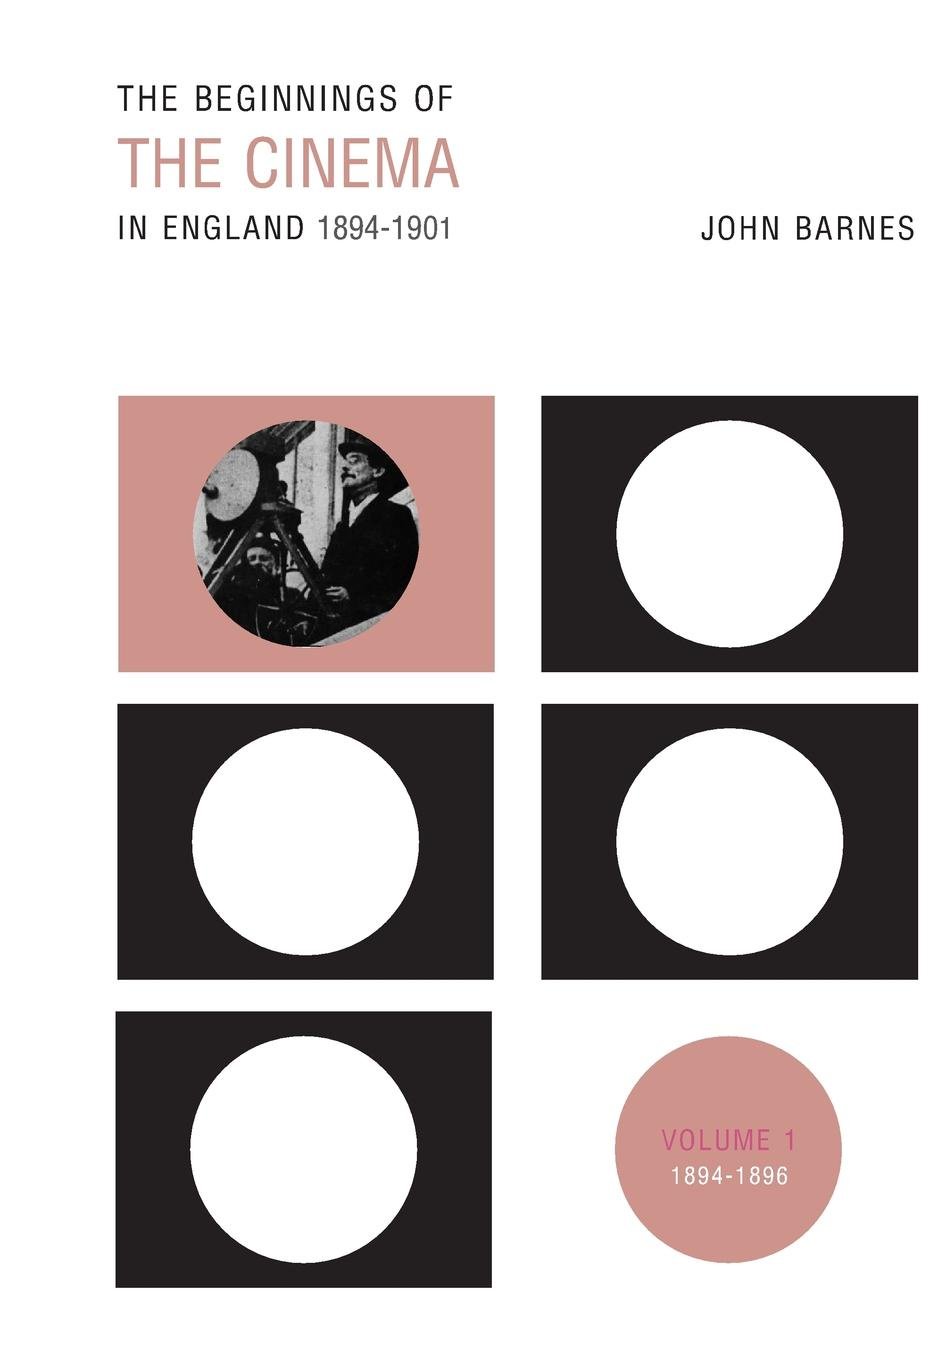 John Barnes. The Beginnings of the Cinema in England, 1894-1901. Volume 1: 1894-1896